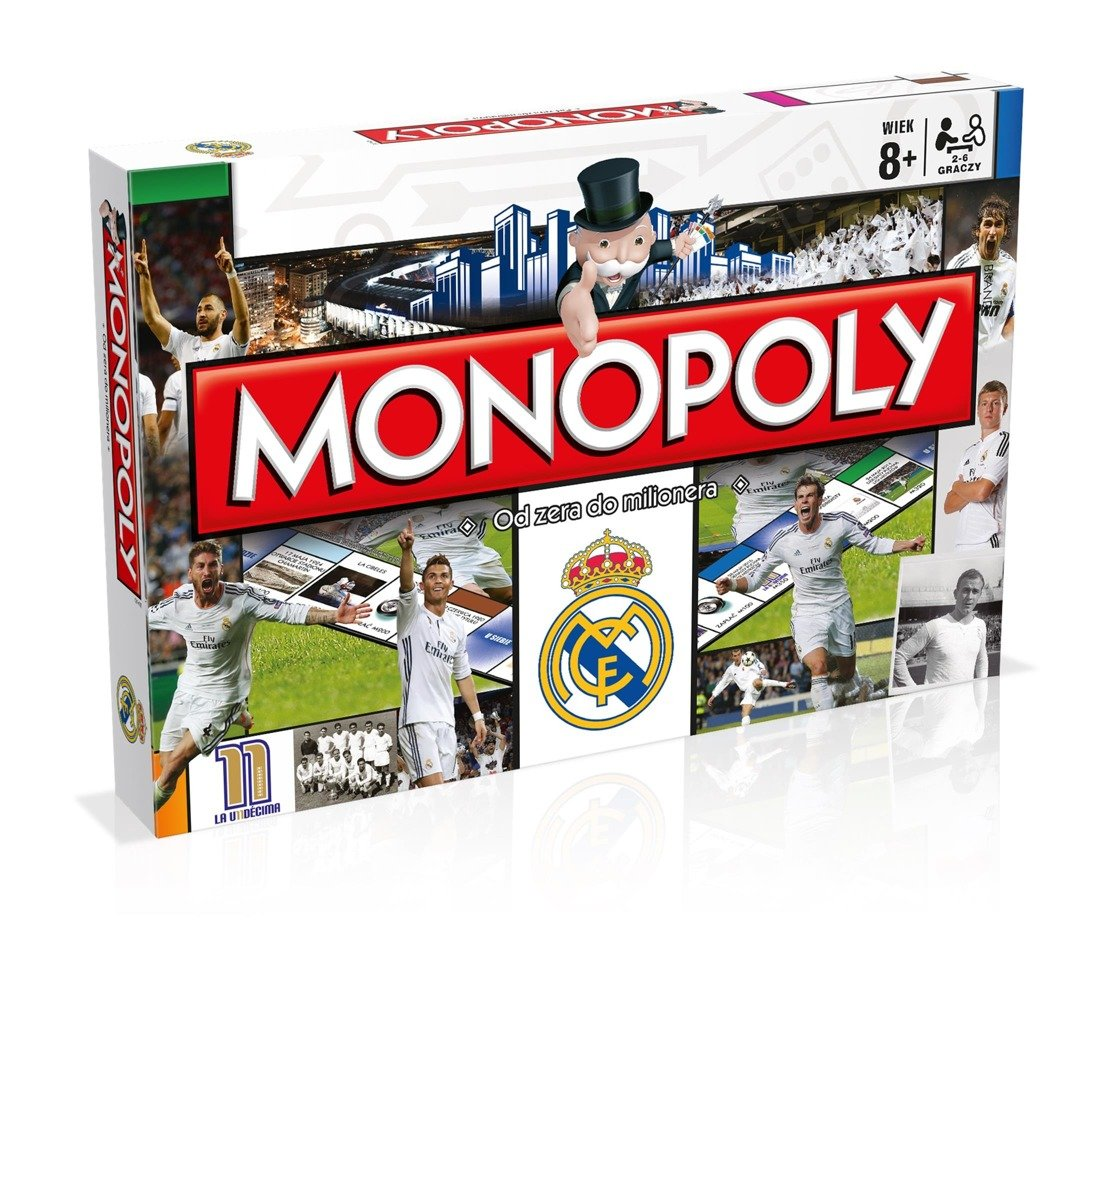 GRA MONOPOLY Real Madryt